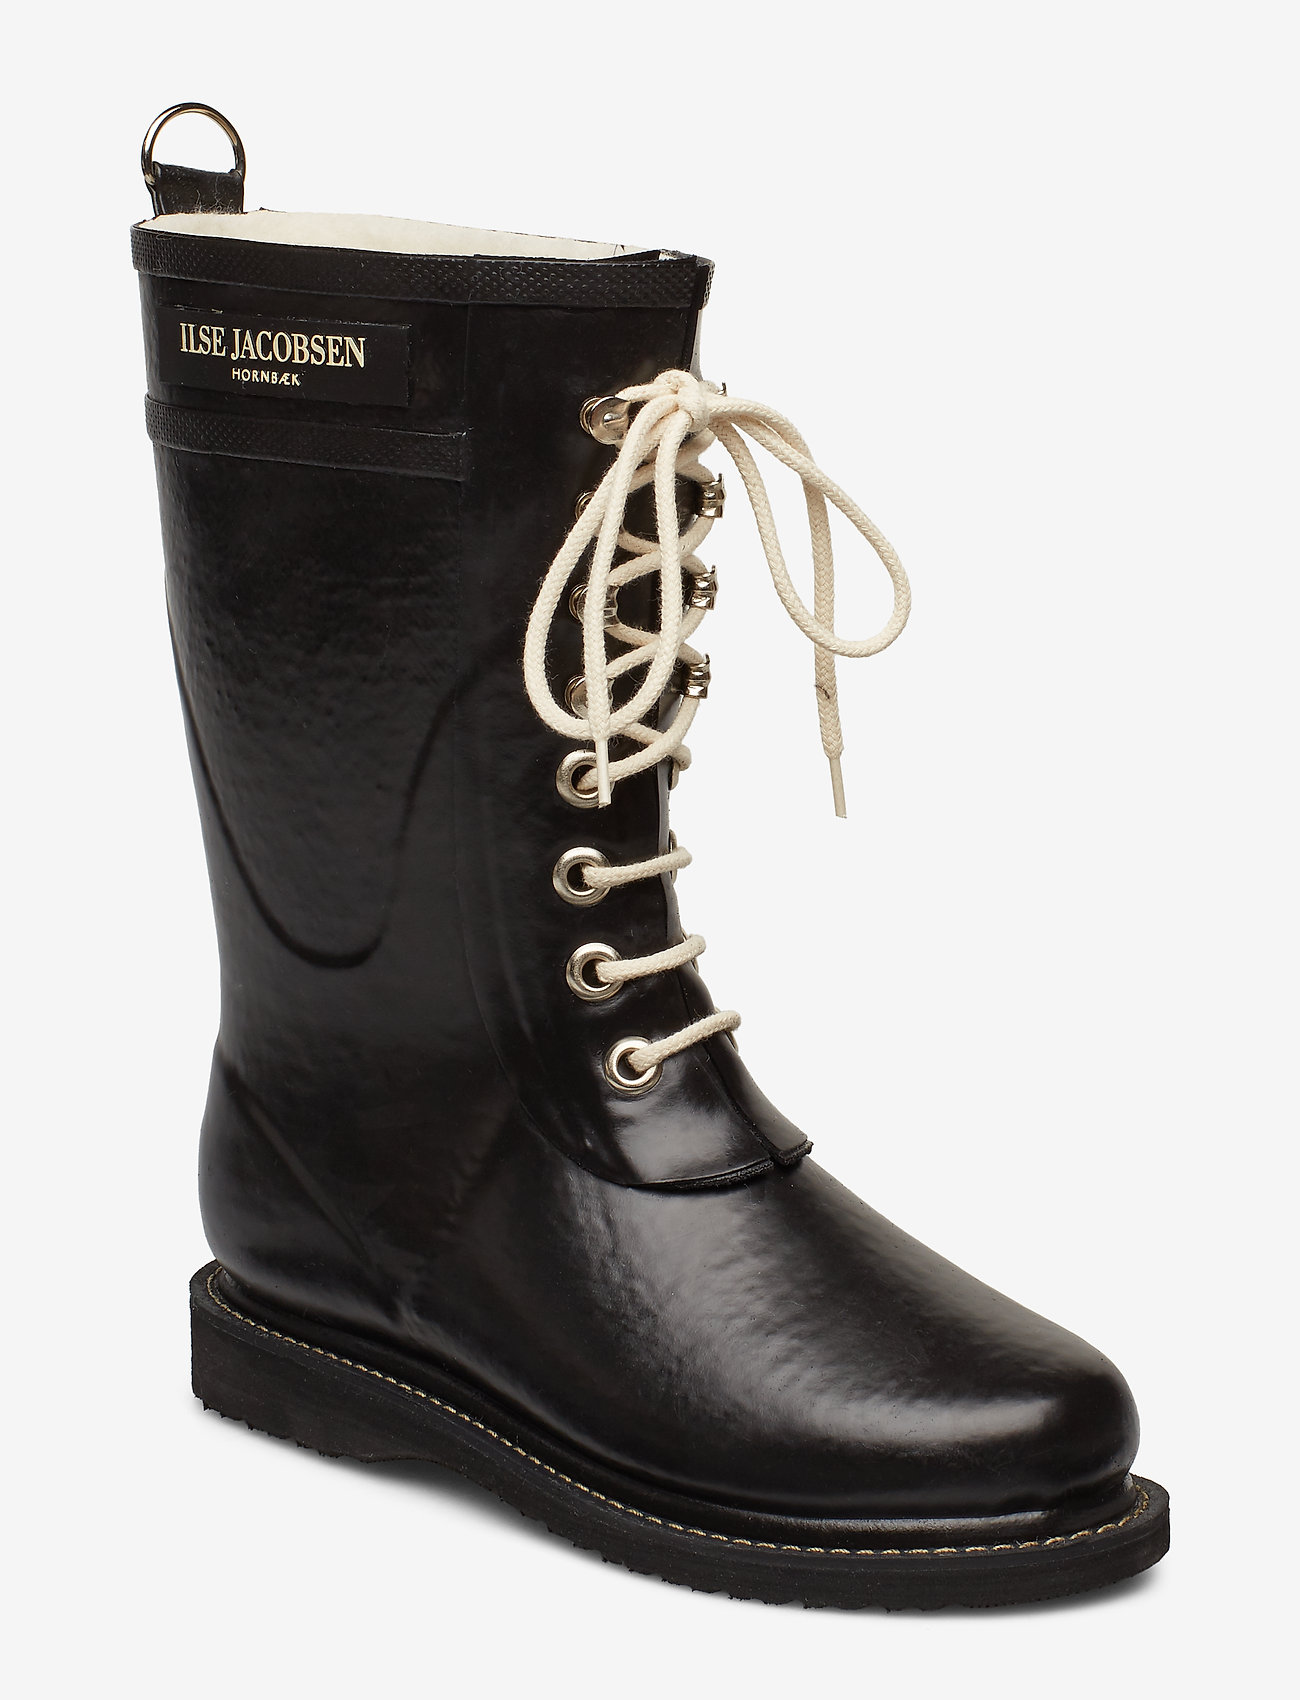 Ilse Jacobsen - 3/4 RUBBERBOOT - kalosze - black - 0